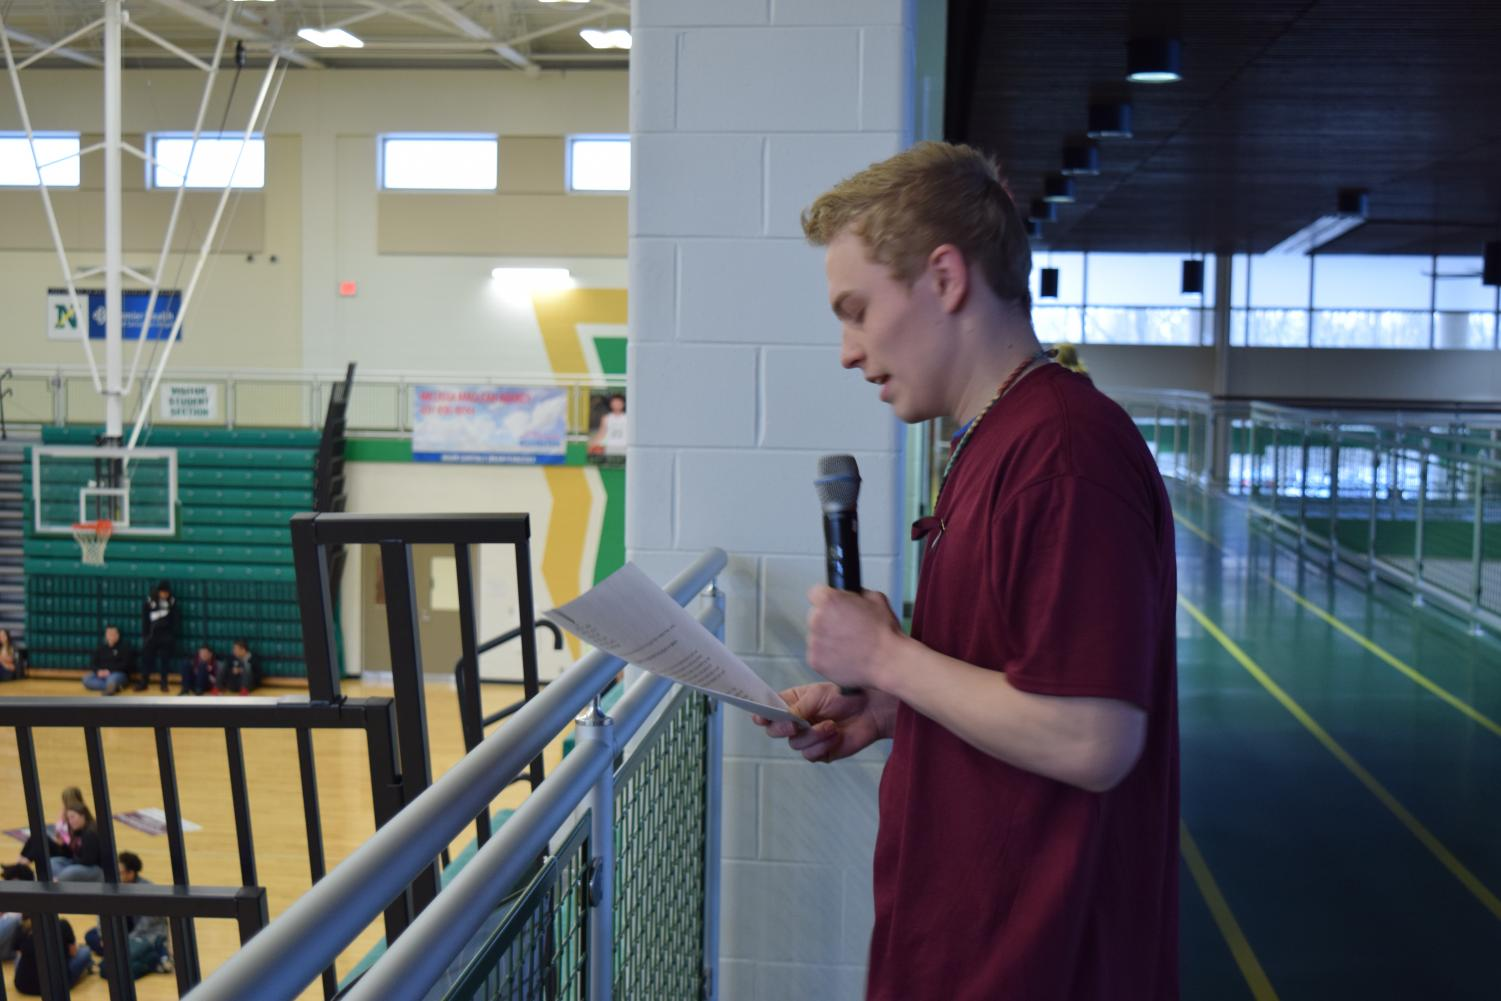 Senior Dominic Stratton addresses his peers at the assembly on March 14.